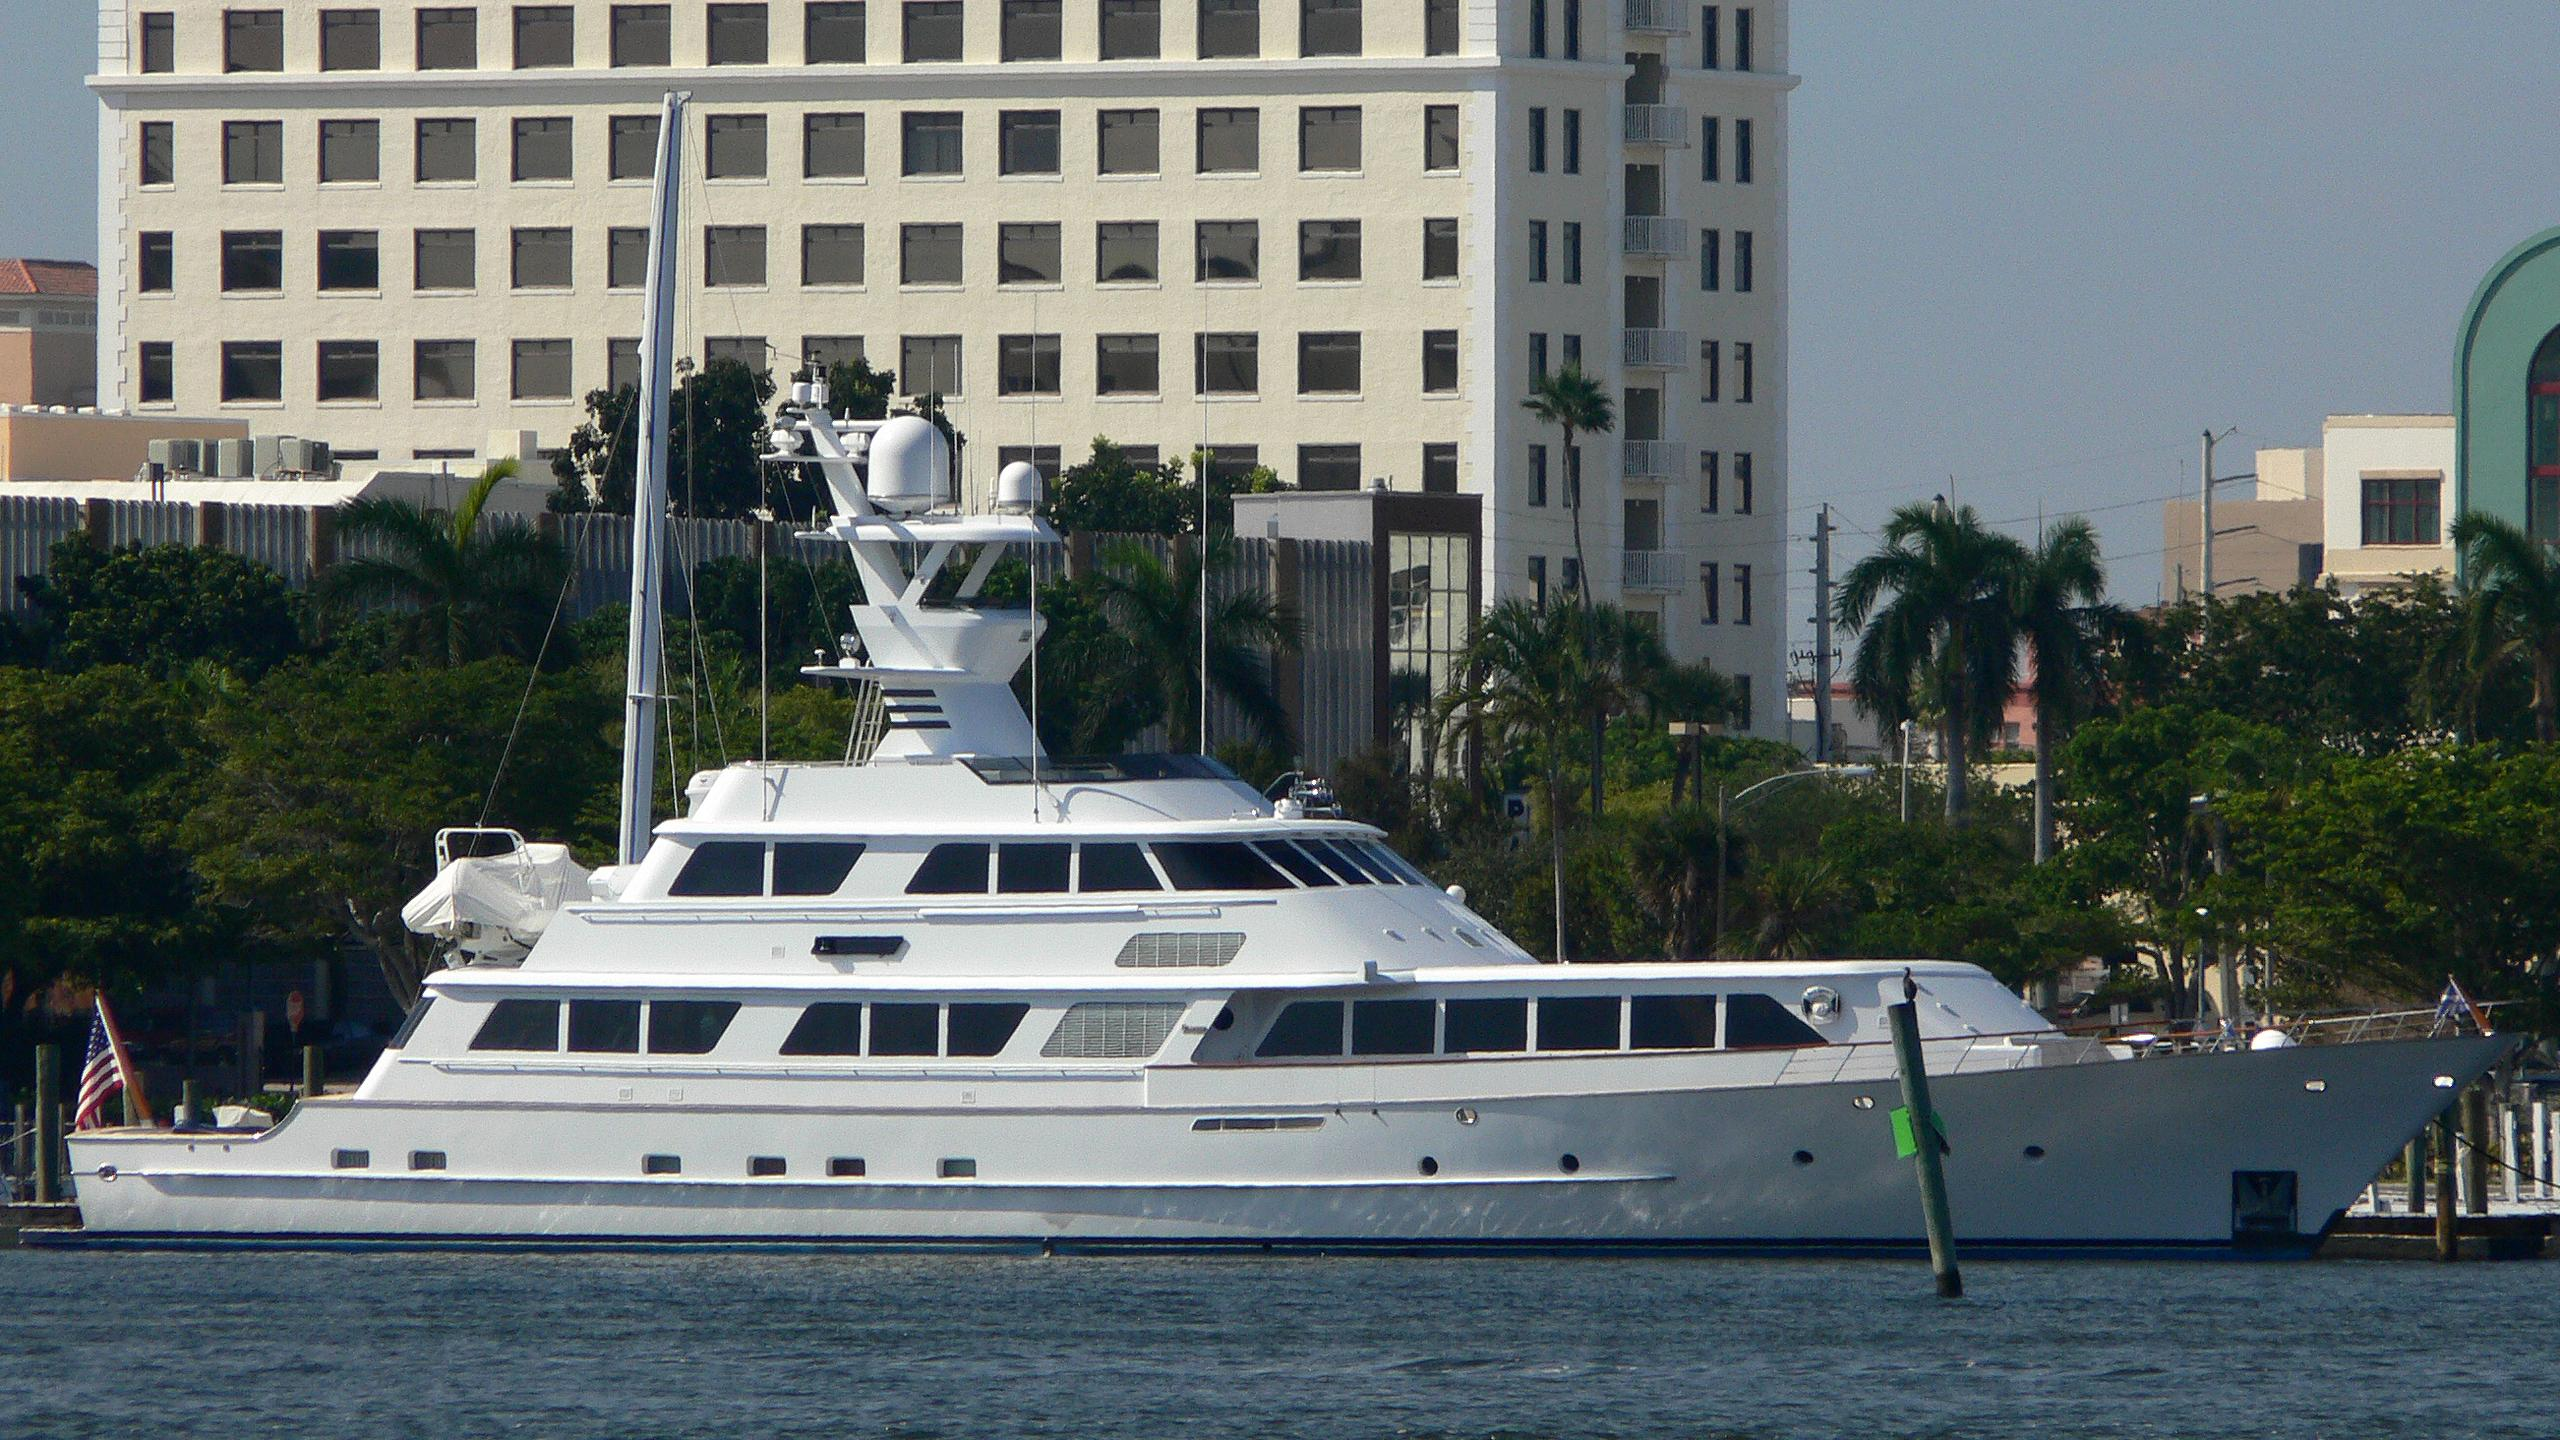 lady-sandals-motor-yacht-feadship-1985-40m-moored-profile